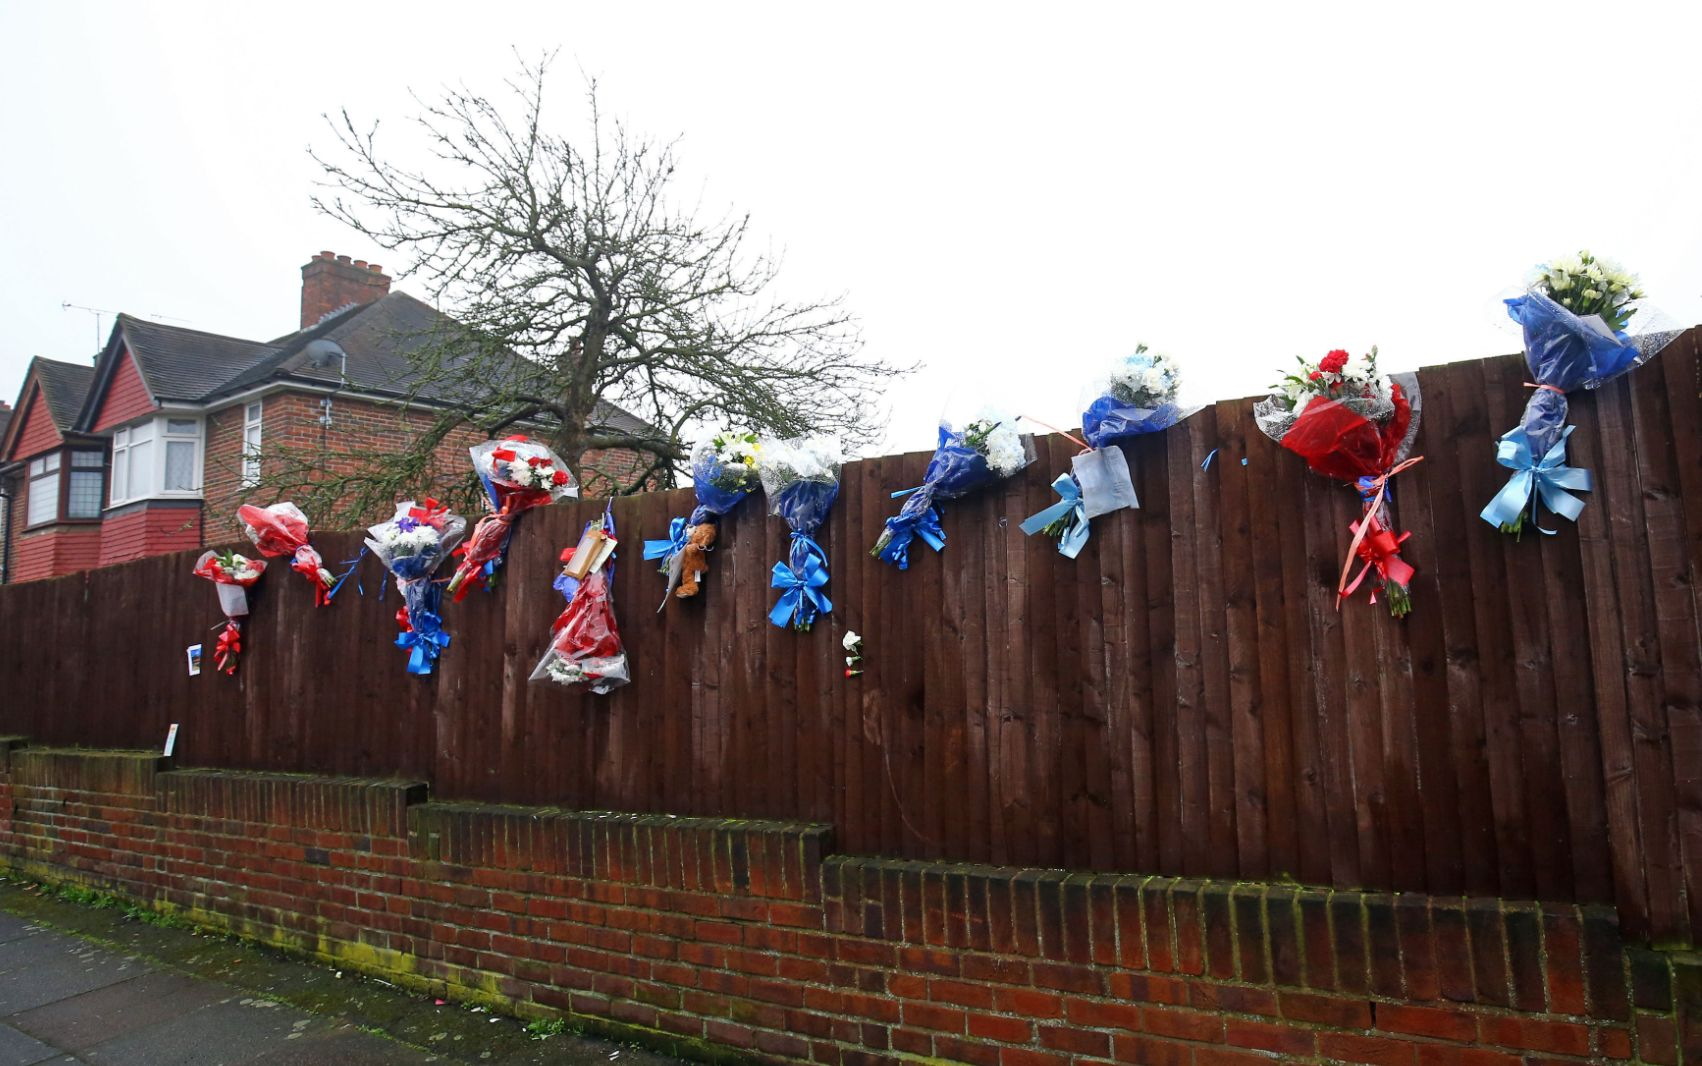 Hither Green burglary: vigilante destroys tributes to intruder stabbed by homeowner